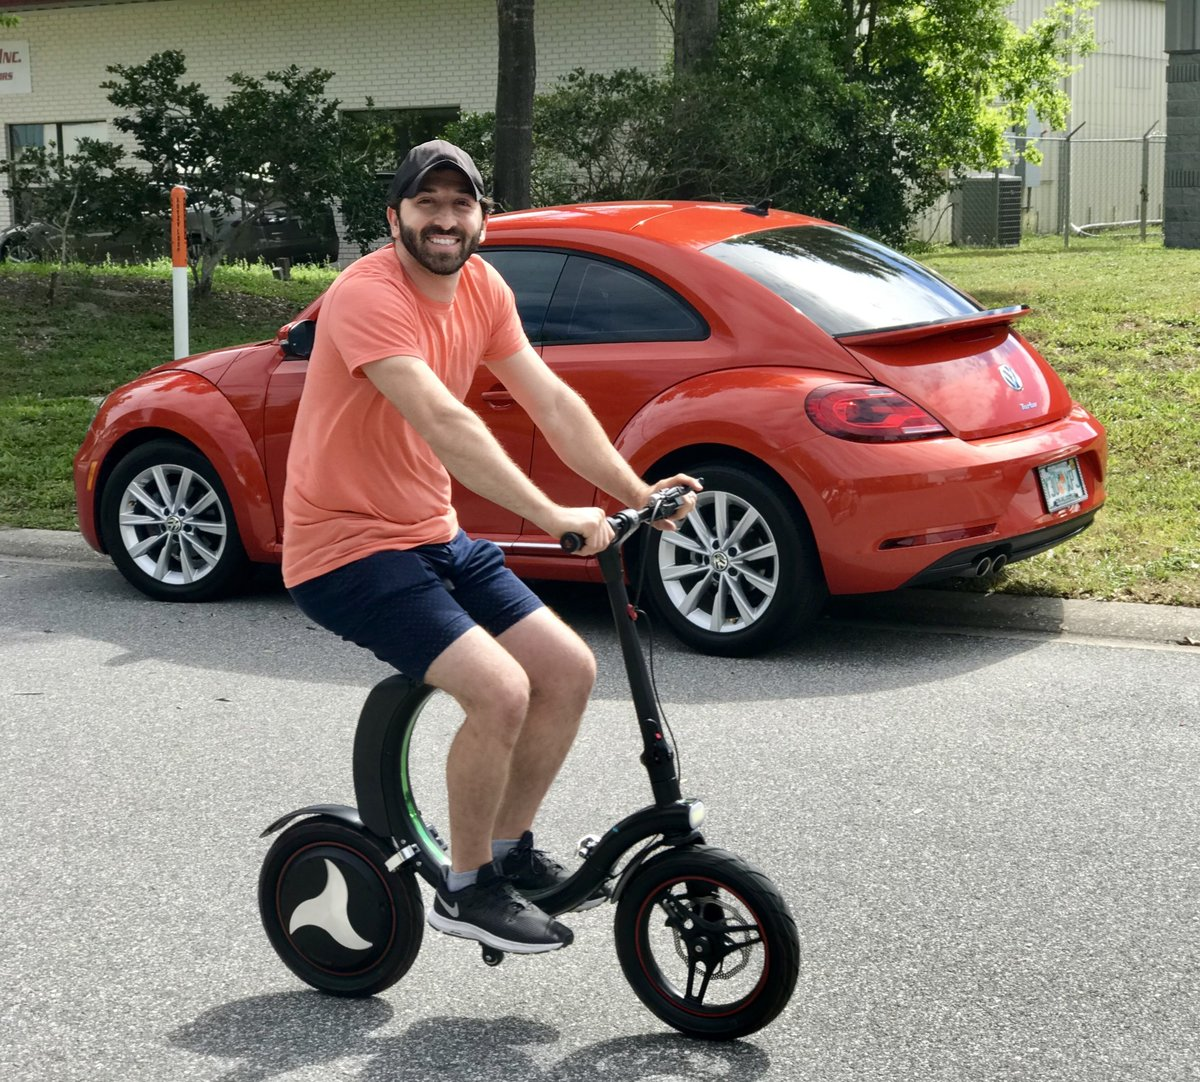 Guy riding his Go-Bike Q1 after parking his Red Volkswagon